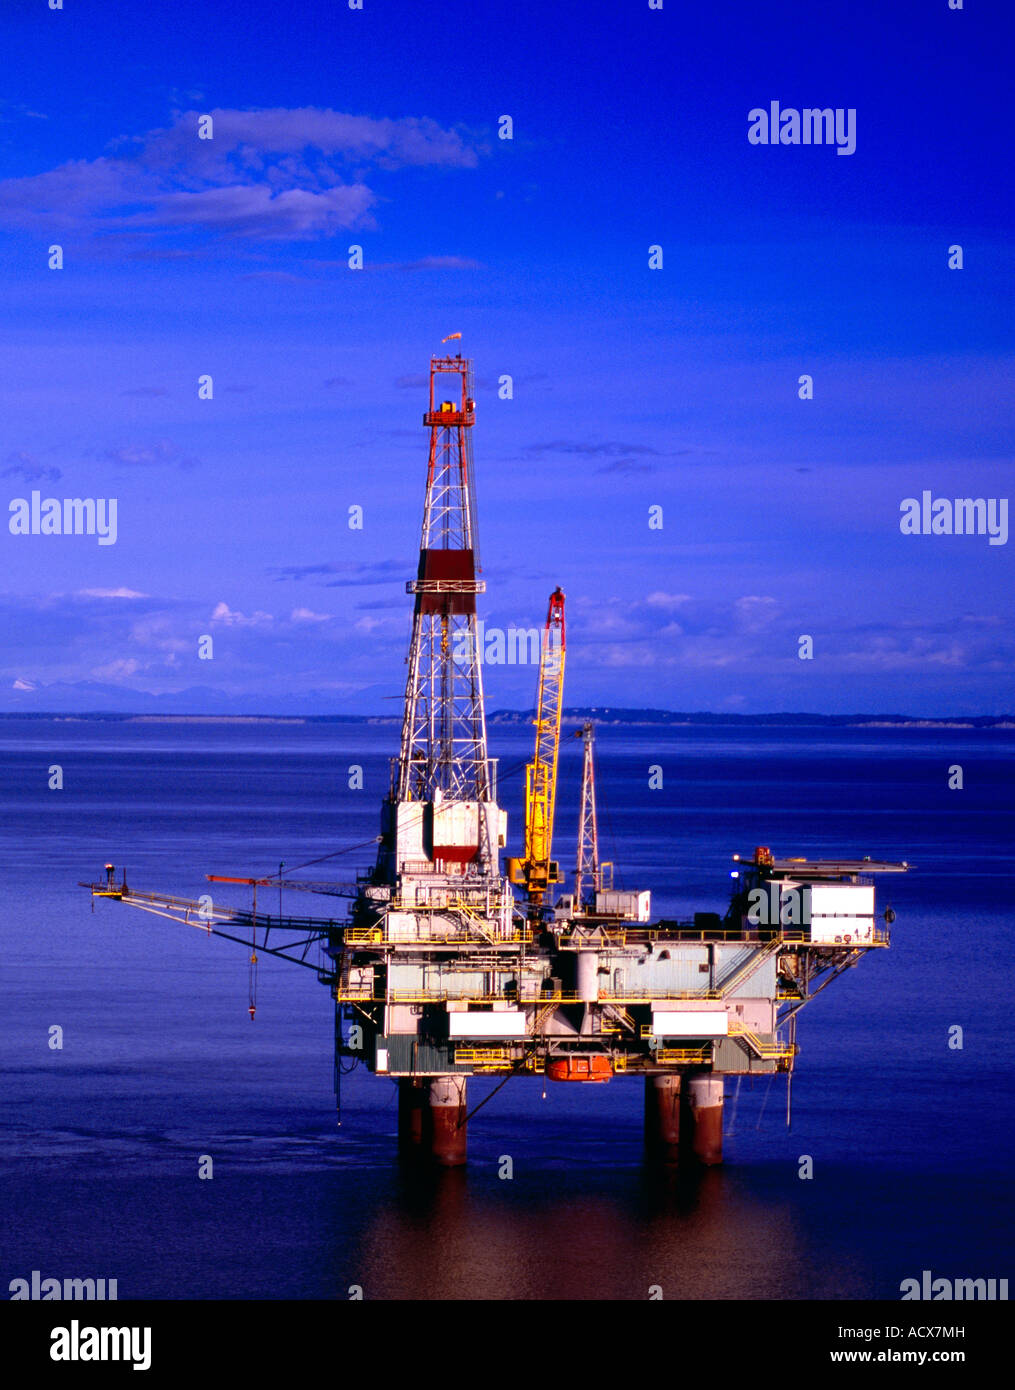 Offshore oil and gas production in the Cook Inlet Alaska